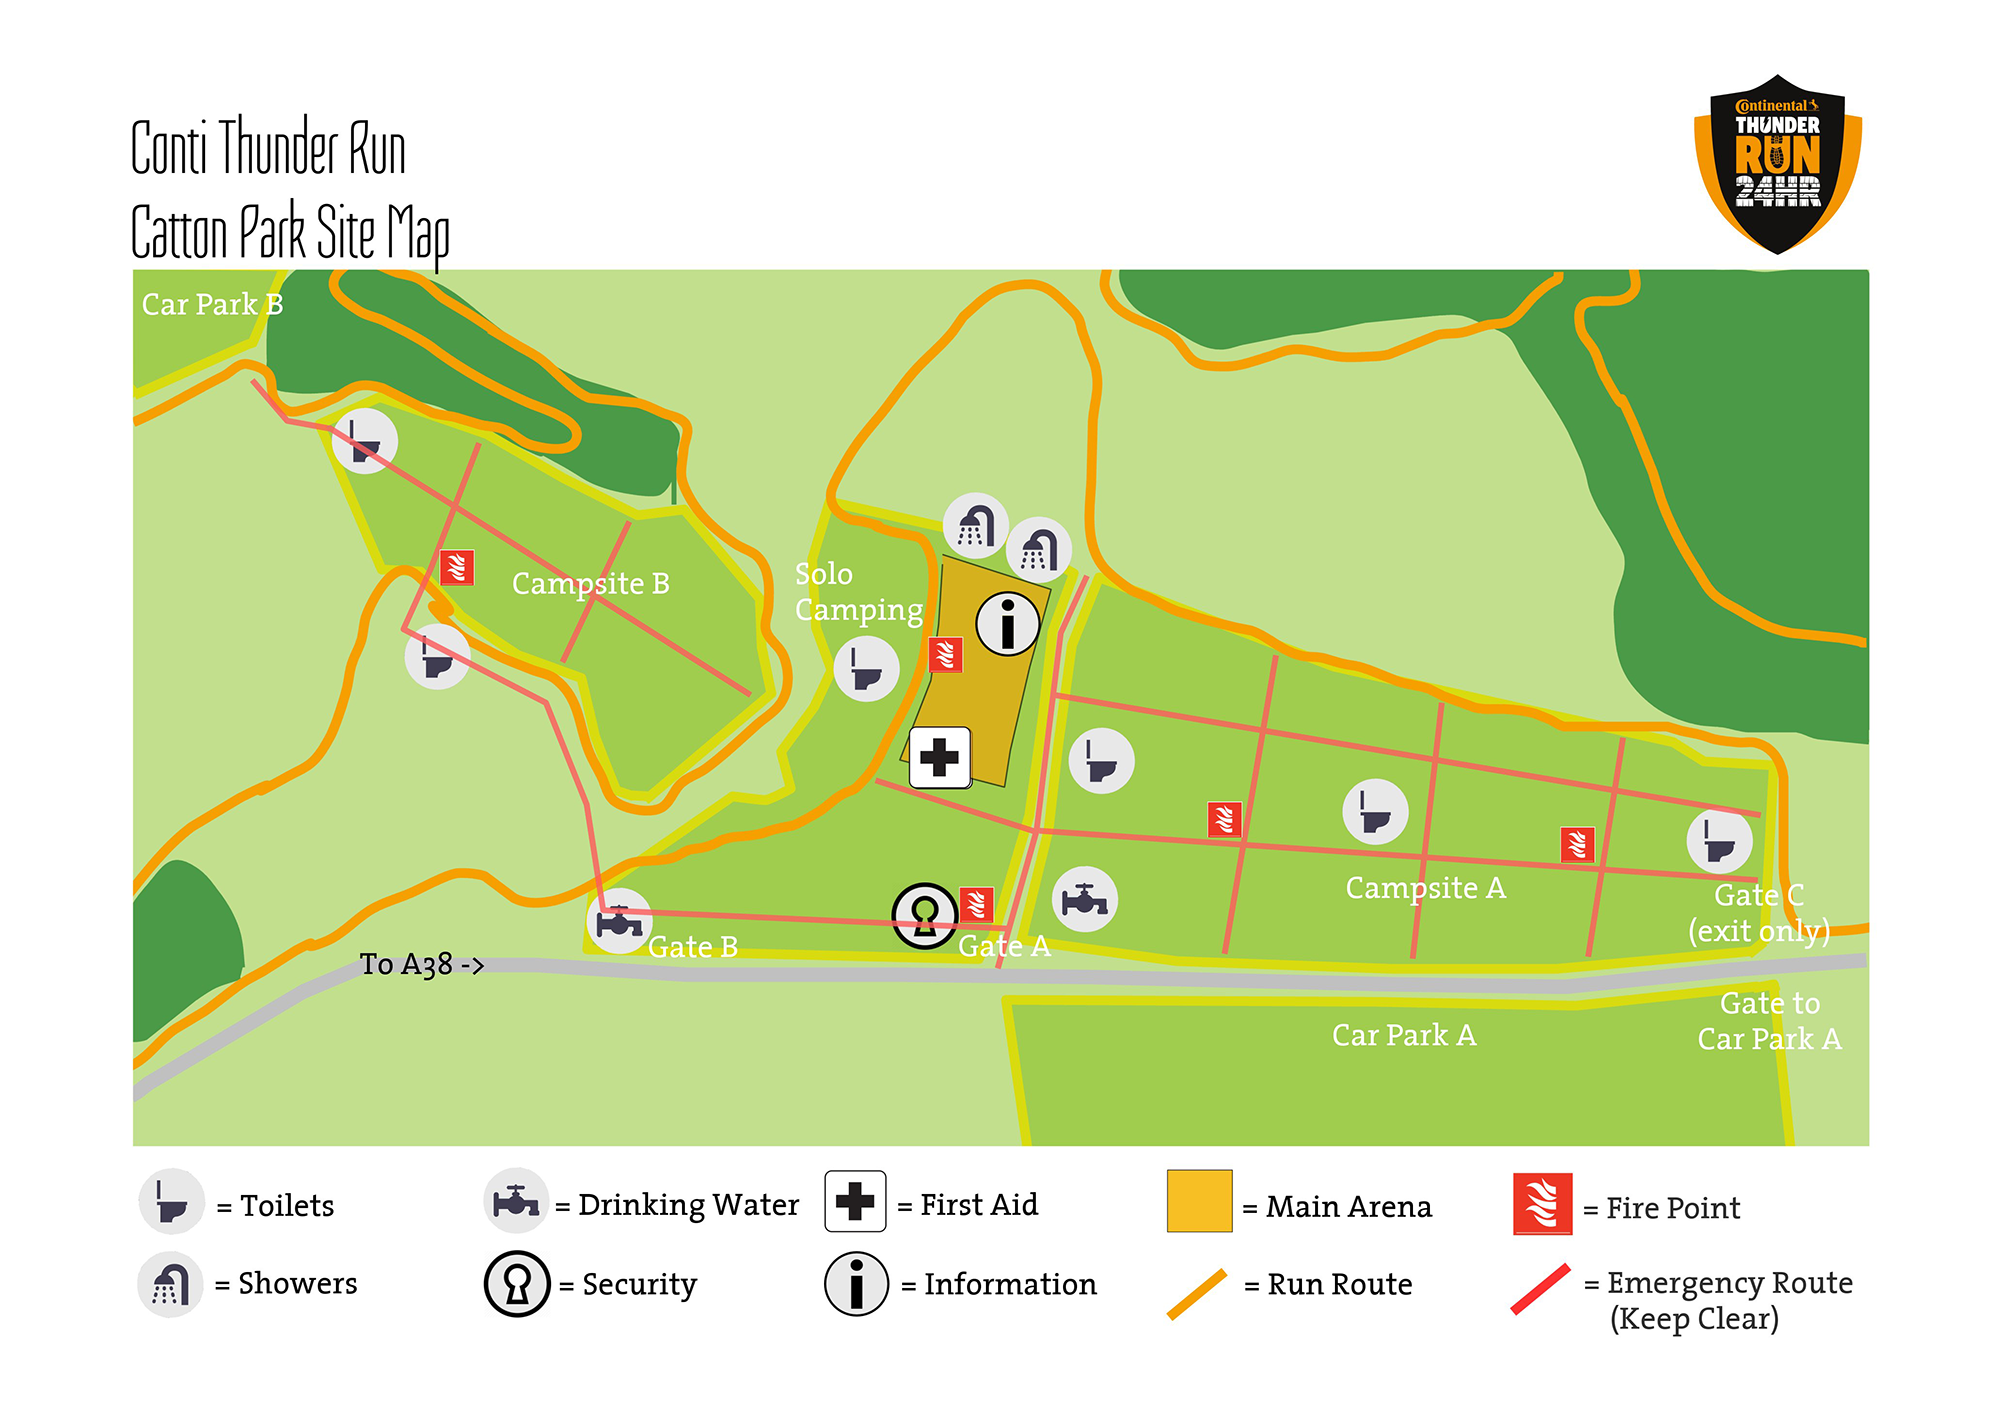 Conti Thunder Run 2020 site map